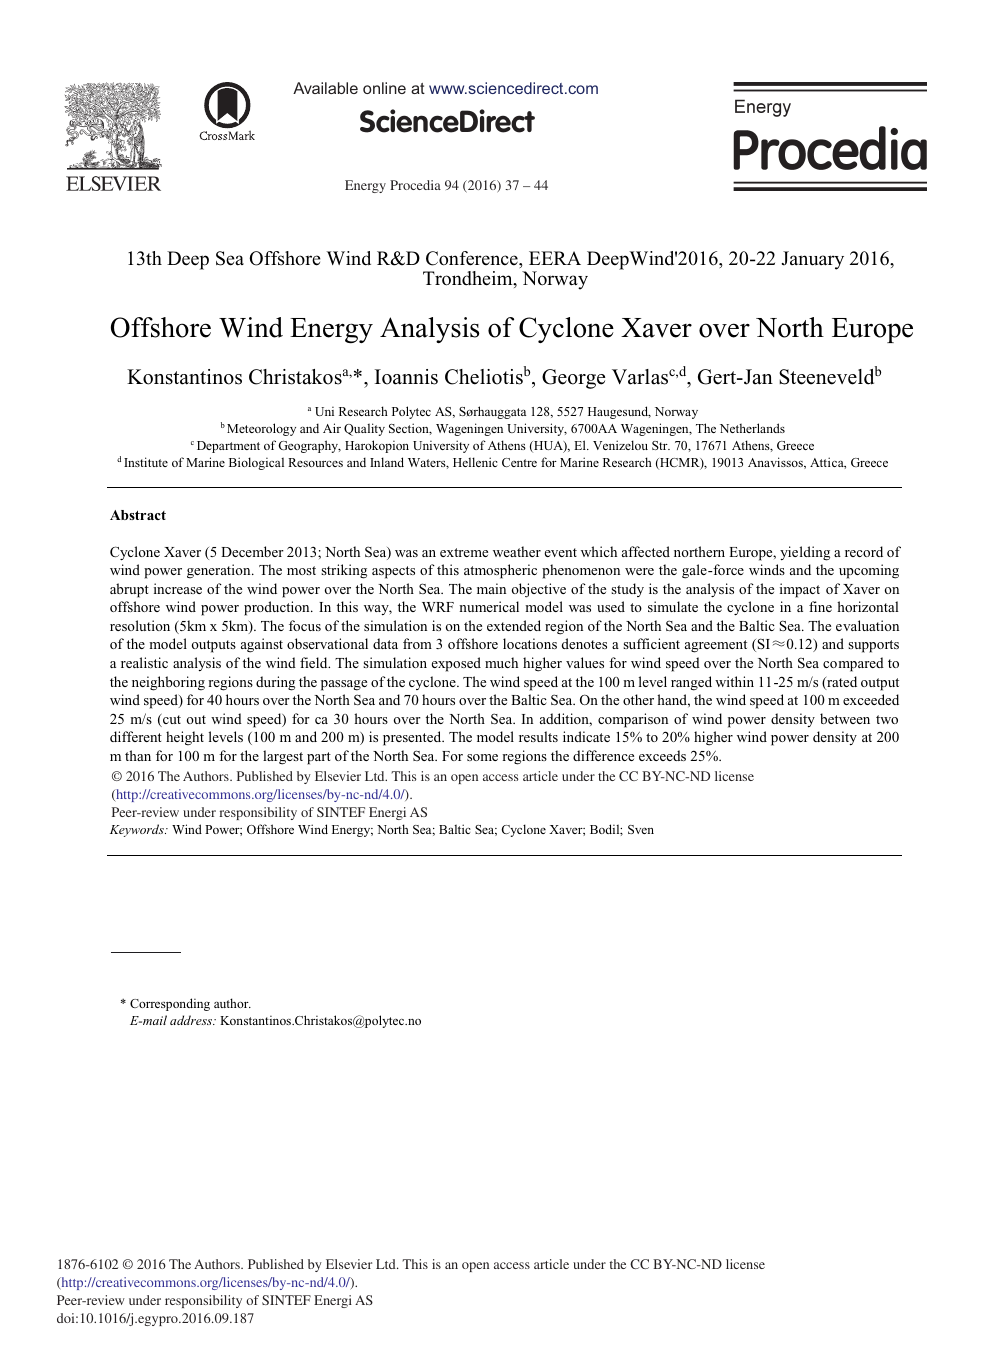 Offshore Wind Energy Analysis of Cyclone Xaver over North